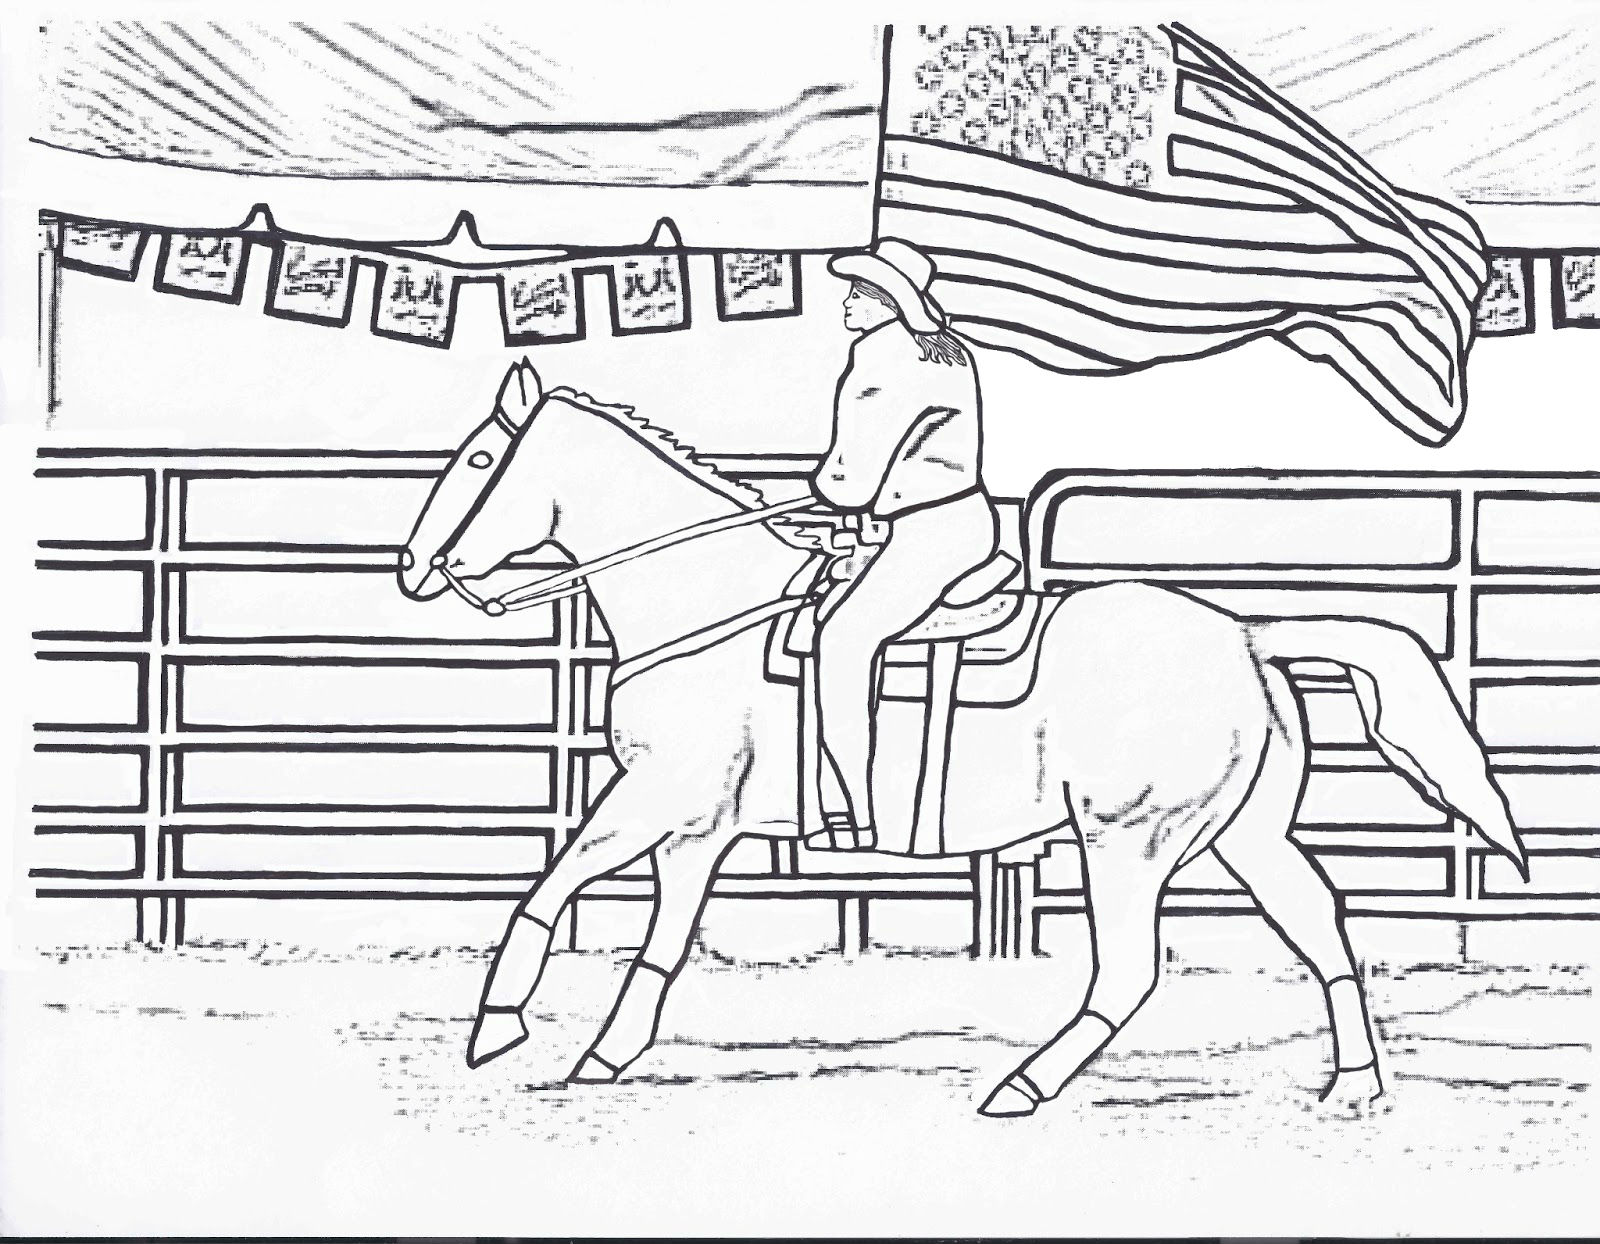 Types Of Sports Coloring Pages For Kids: Horse Riding ...